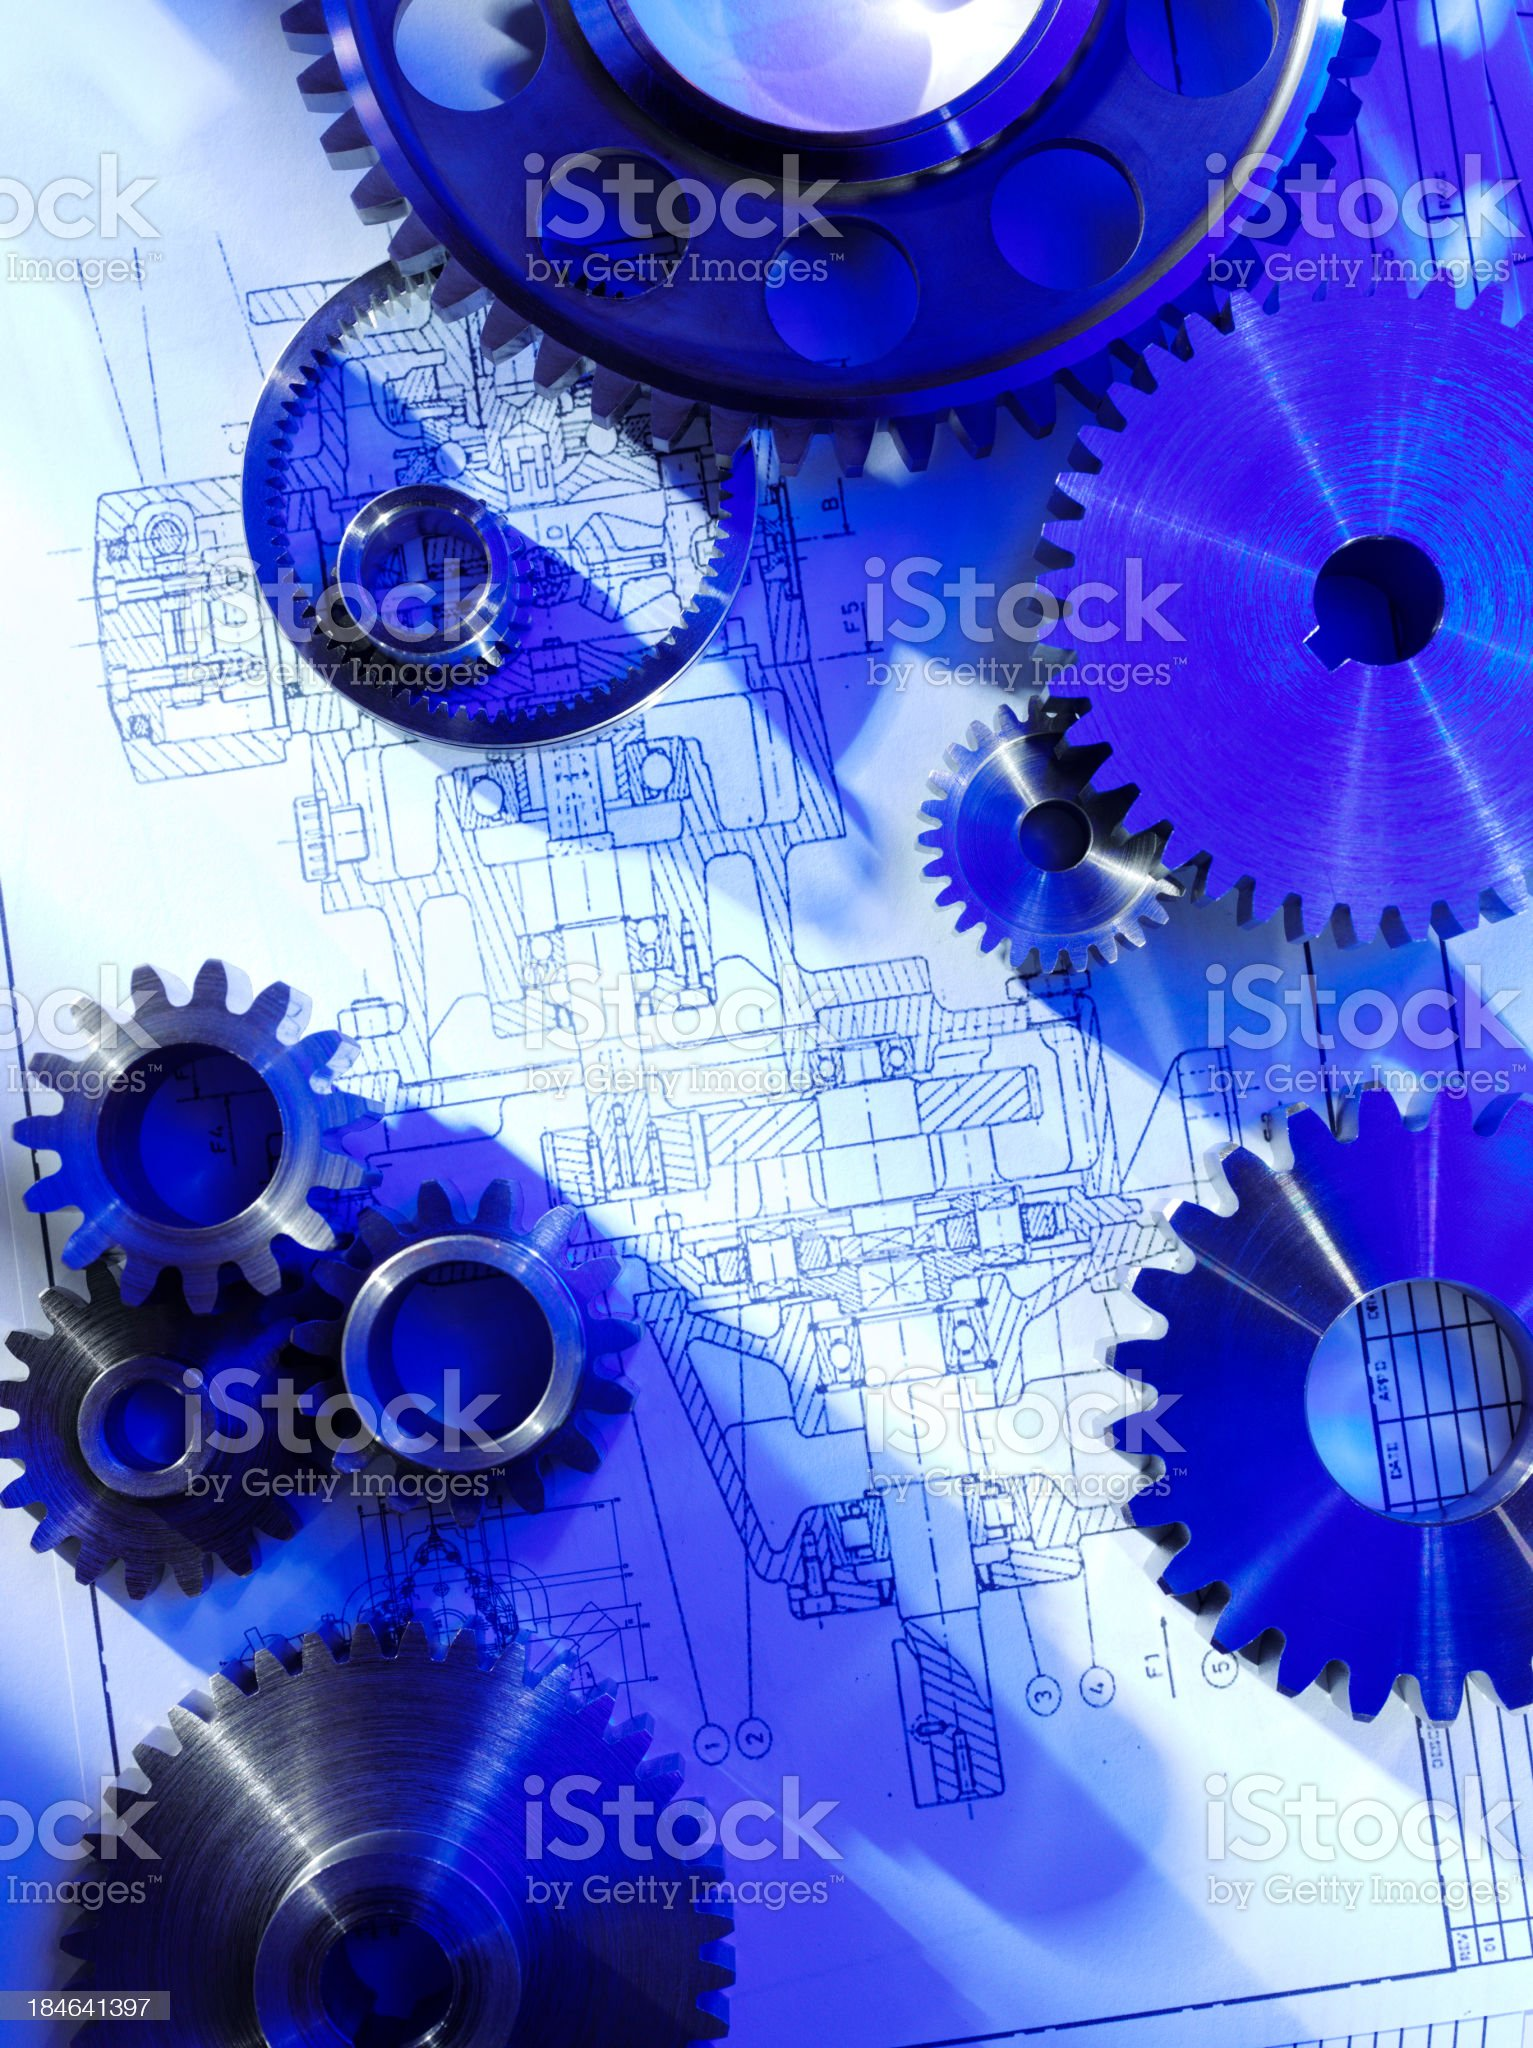 Cogs and Gears with Blueprints royalty-free stock photo